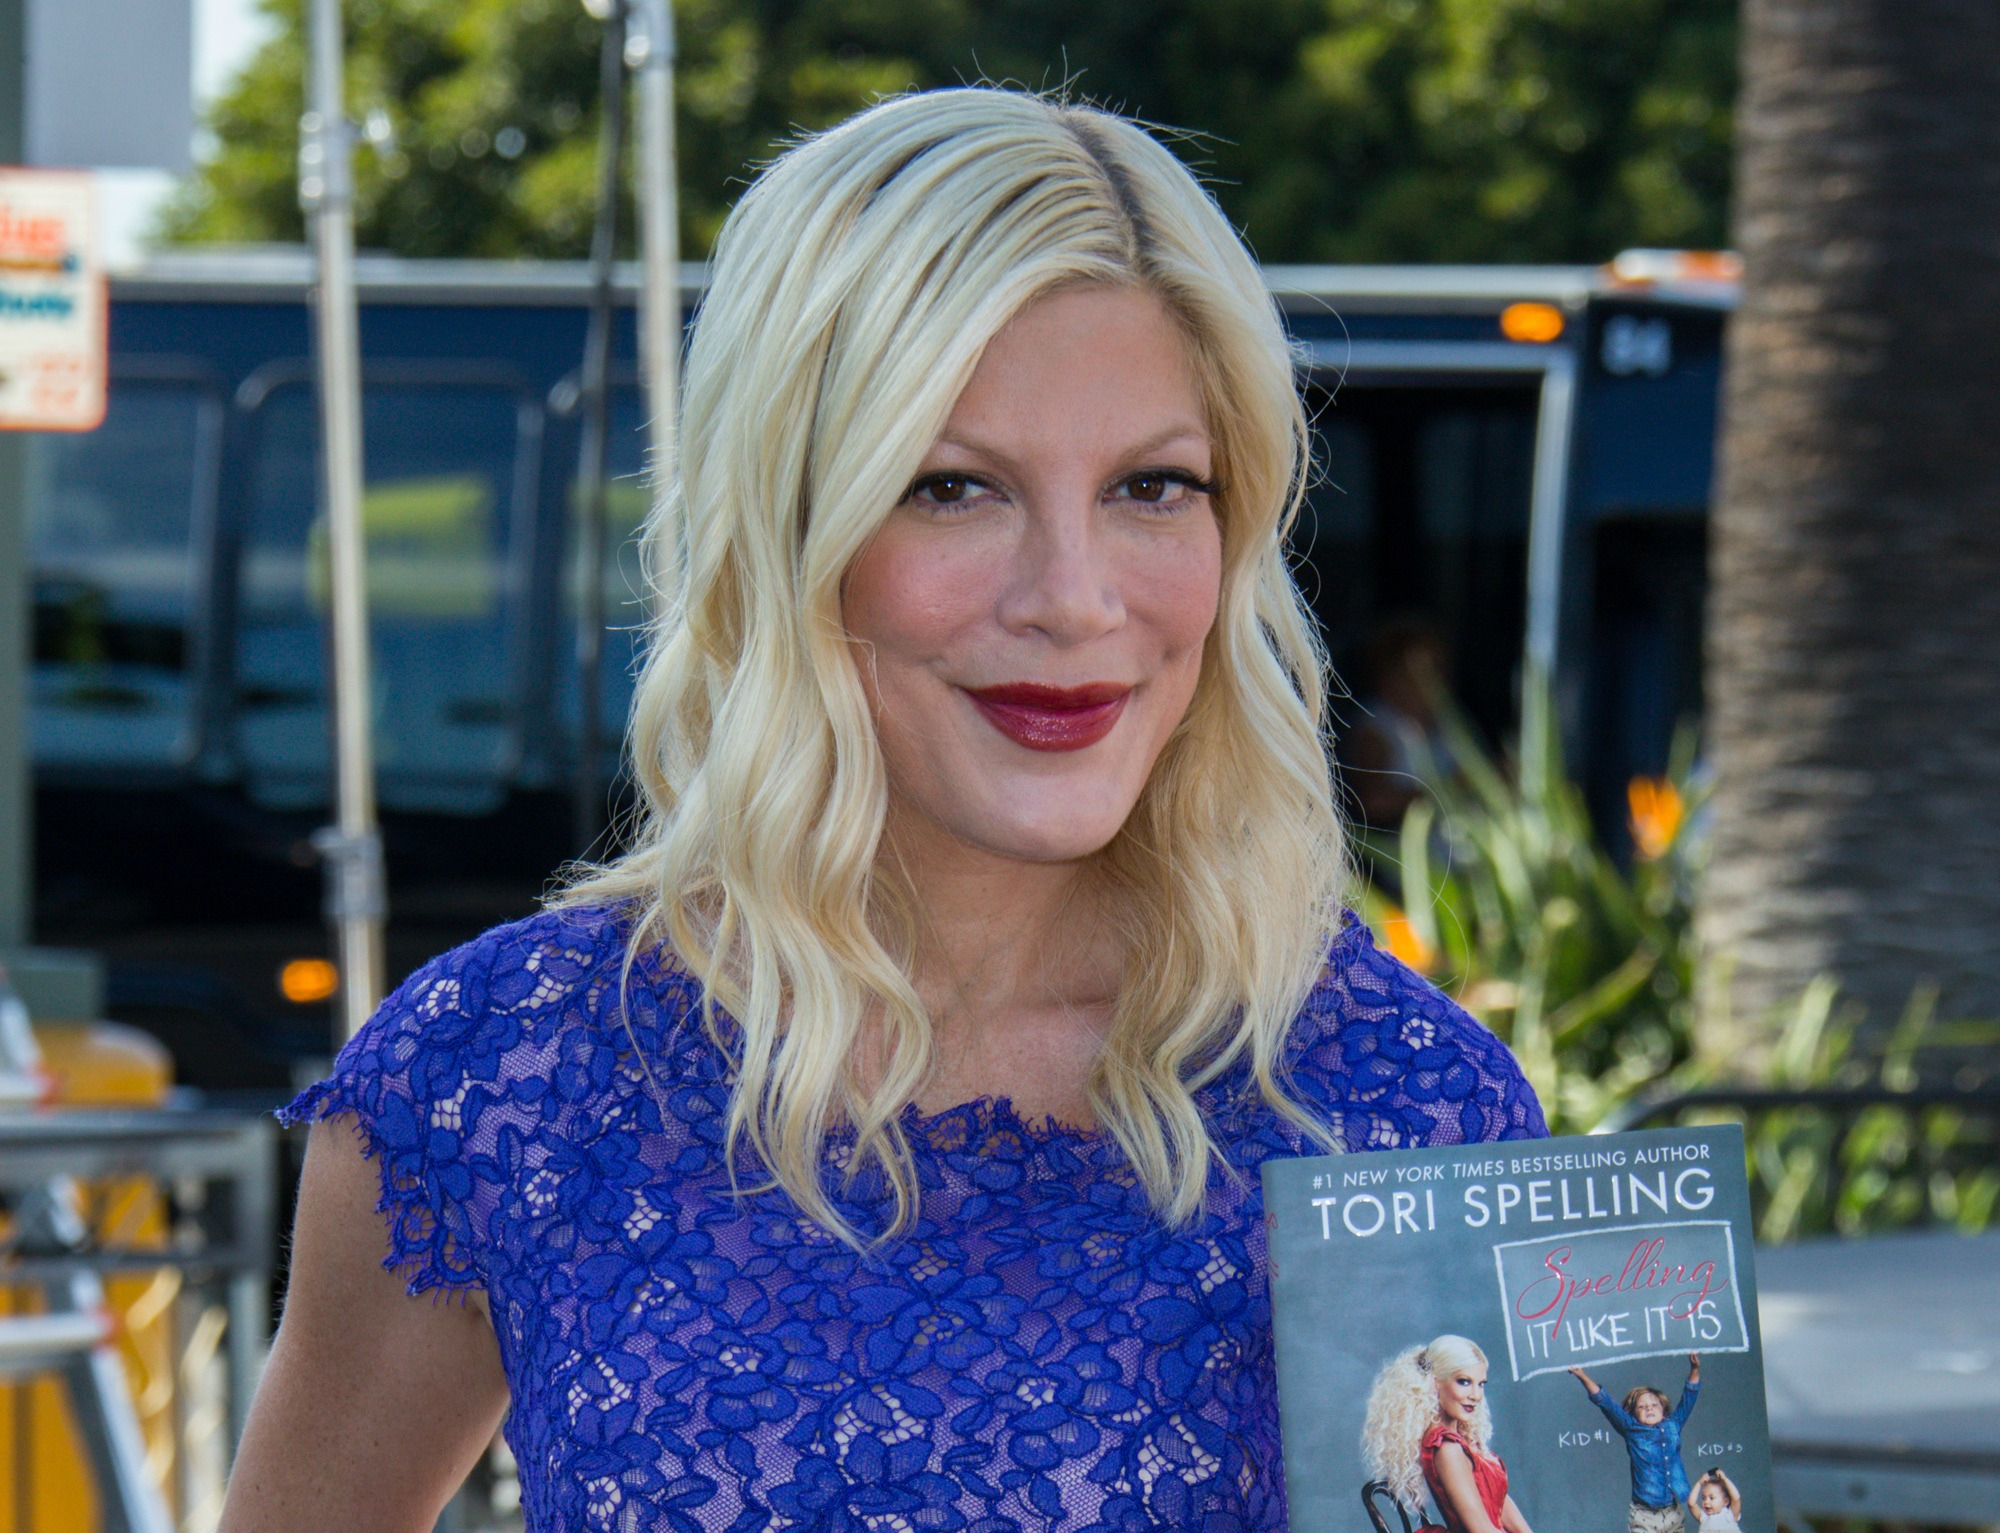 Tori Spelling secretly hospitalized during marriage troubles